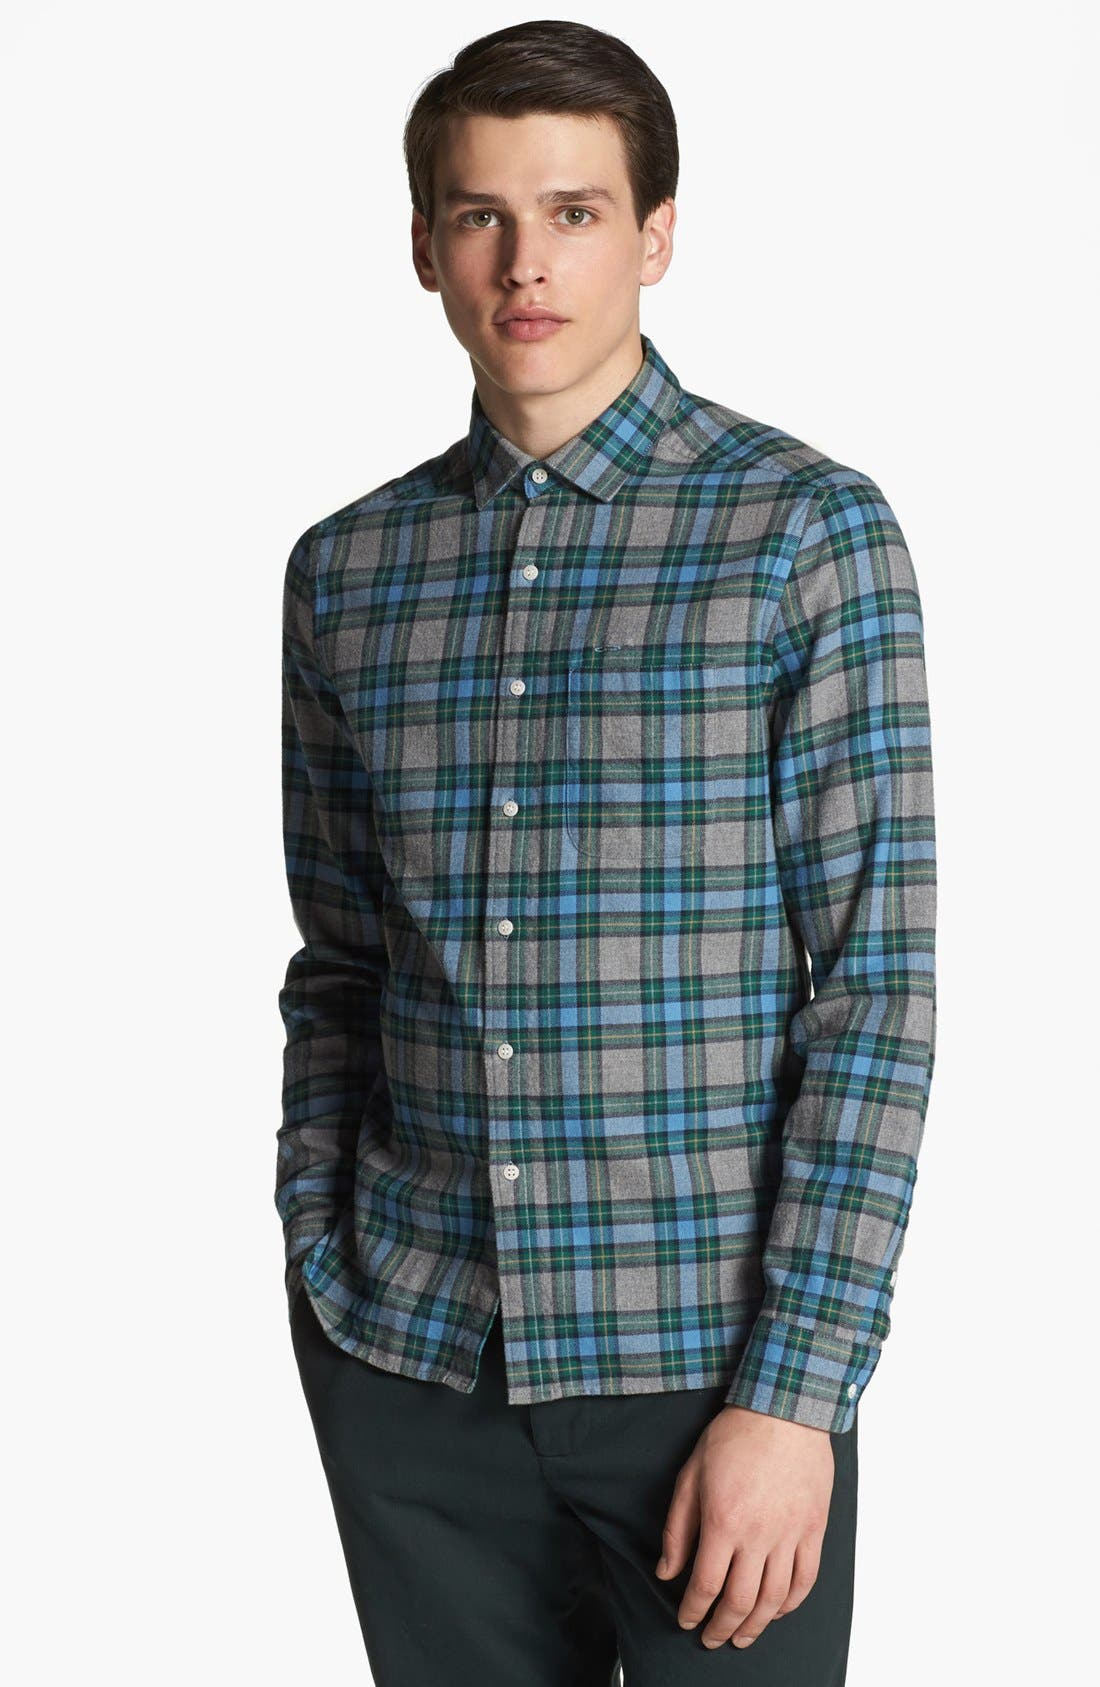 SHIPLEY & HALMOS, 'Marine' Plaid Woven Shirt, Main thumbnail 1, color, 020